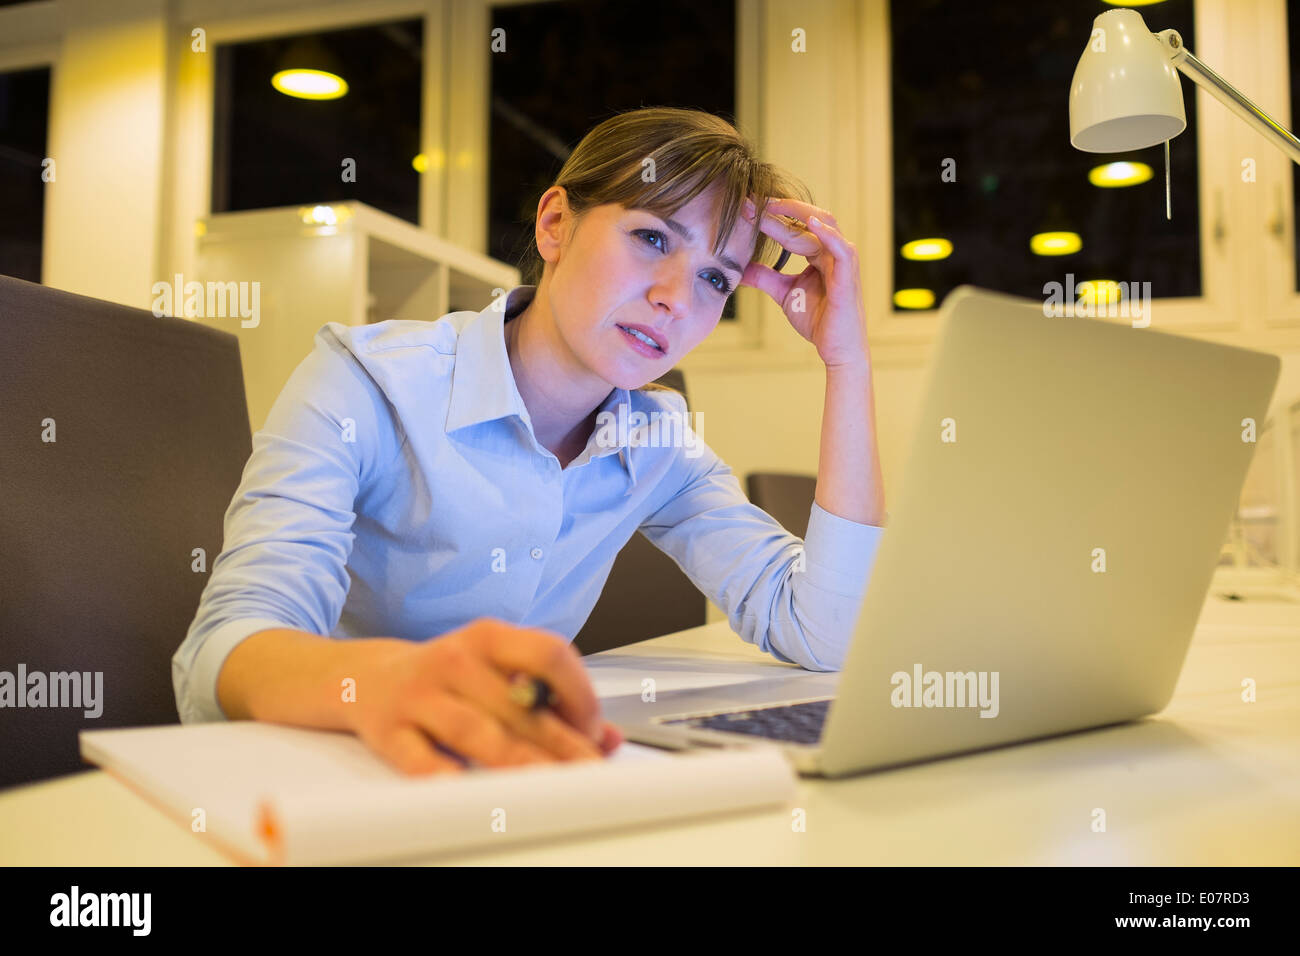 Female business tired working late startup student desk - Stock Image